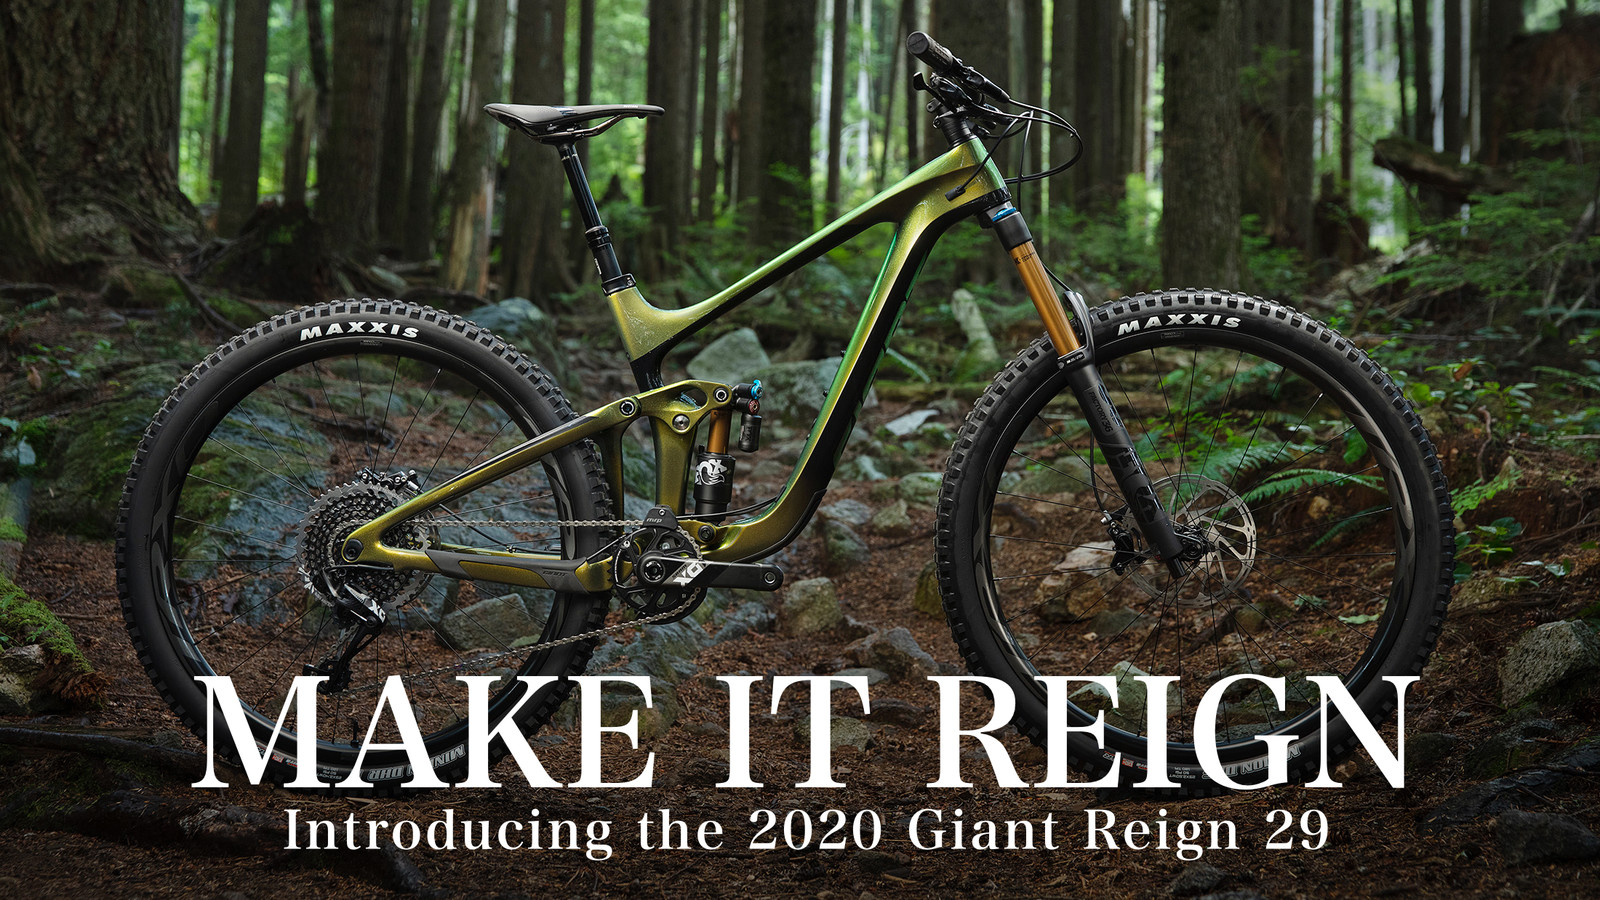 Make it Reign: Introducing the 2020 Giant Reign 29